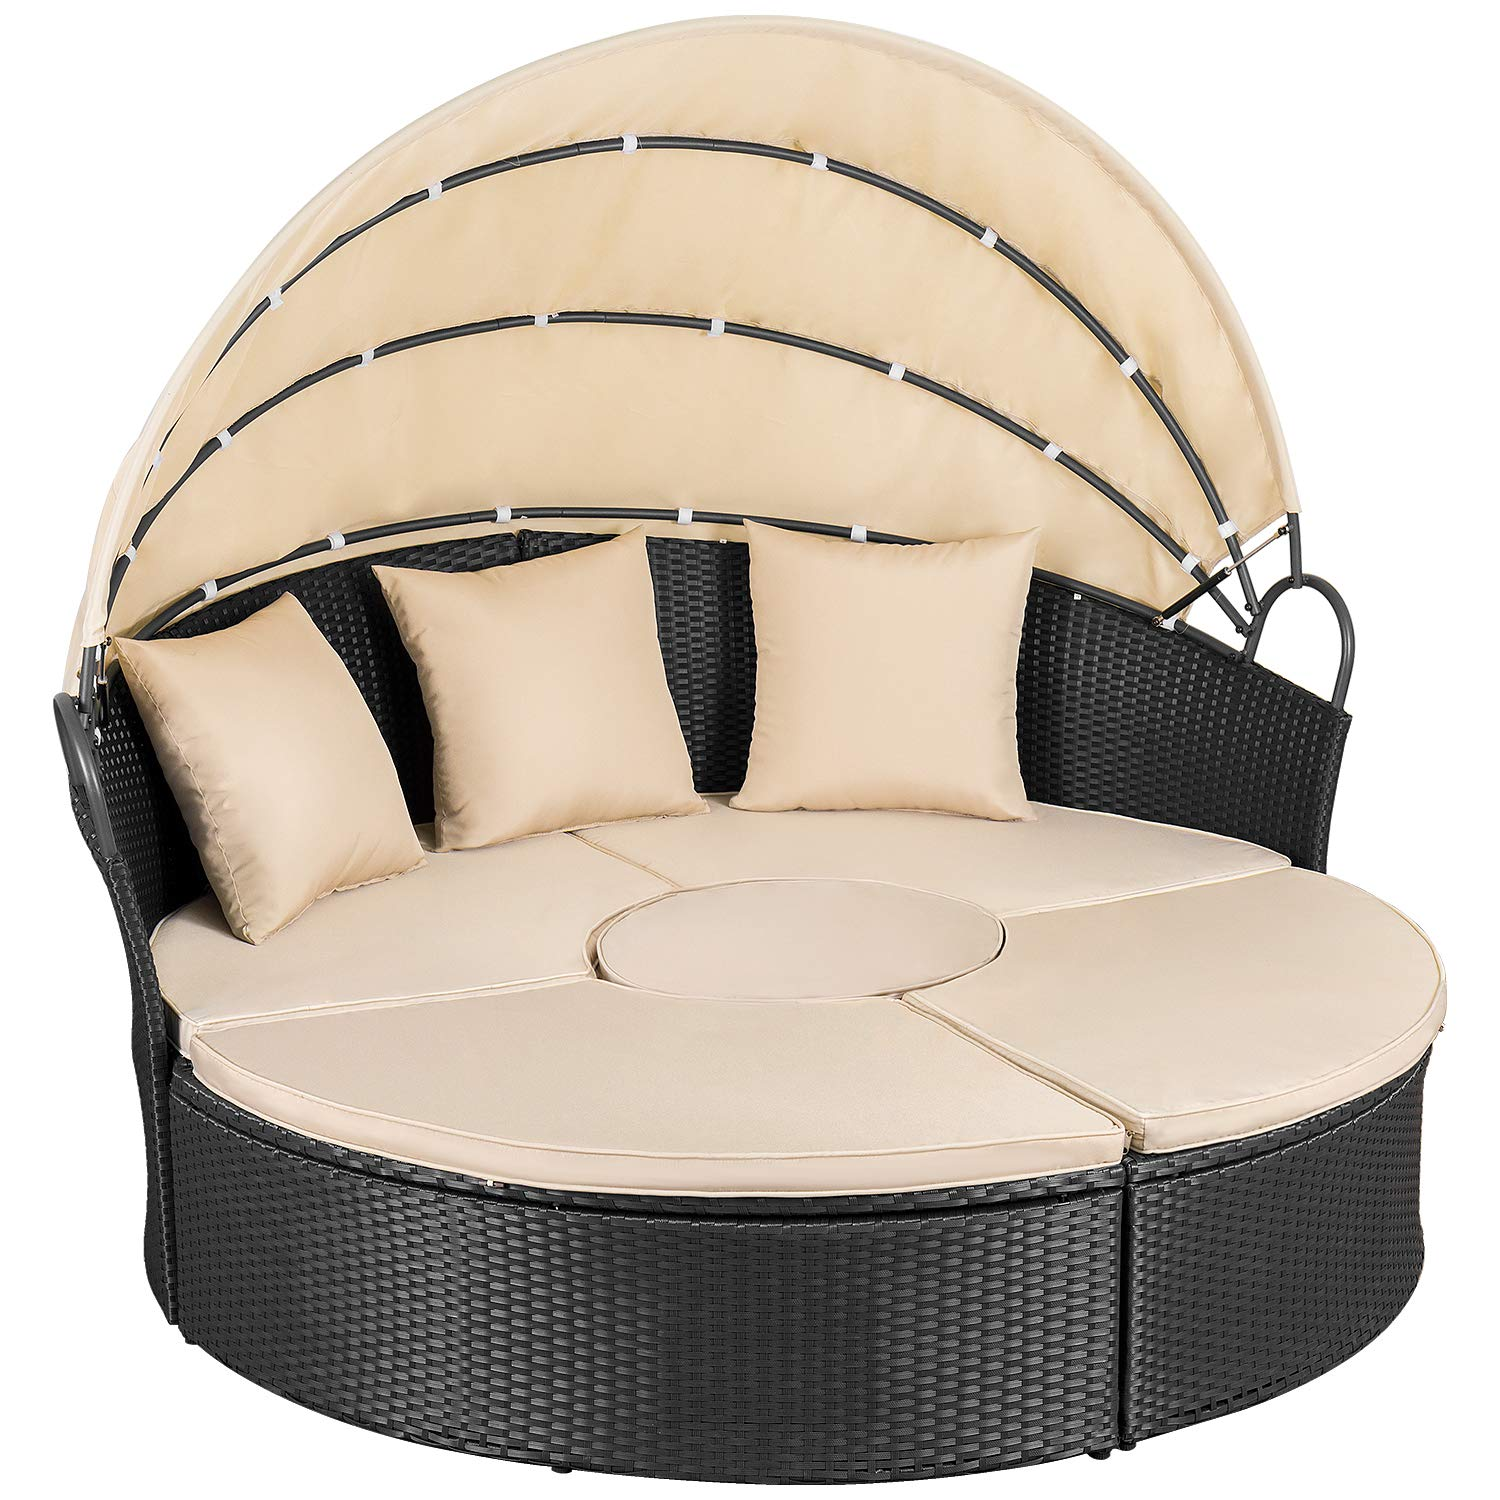 Homall Outdoor Patio Round Daybed with Retractable Canopy Wicker Furniture Sectional Seating with Table and Washable Cushions for Patio Backyard Porch Pool Patio Daybed Separated Seating